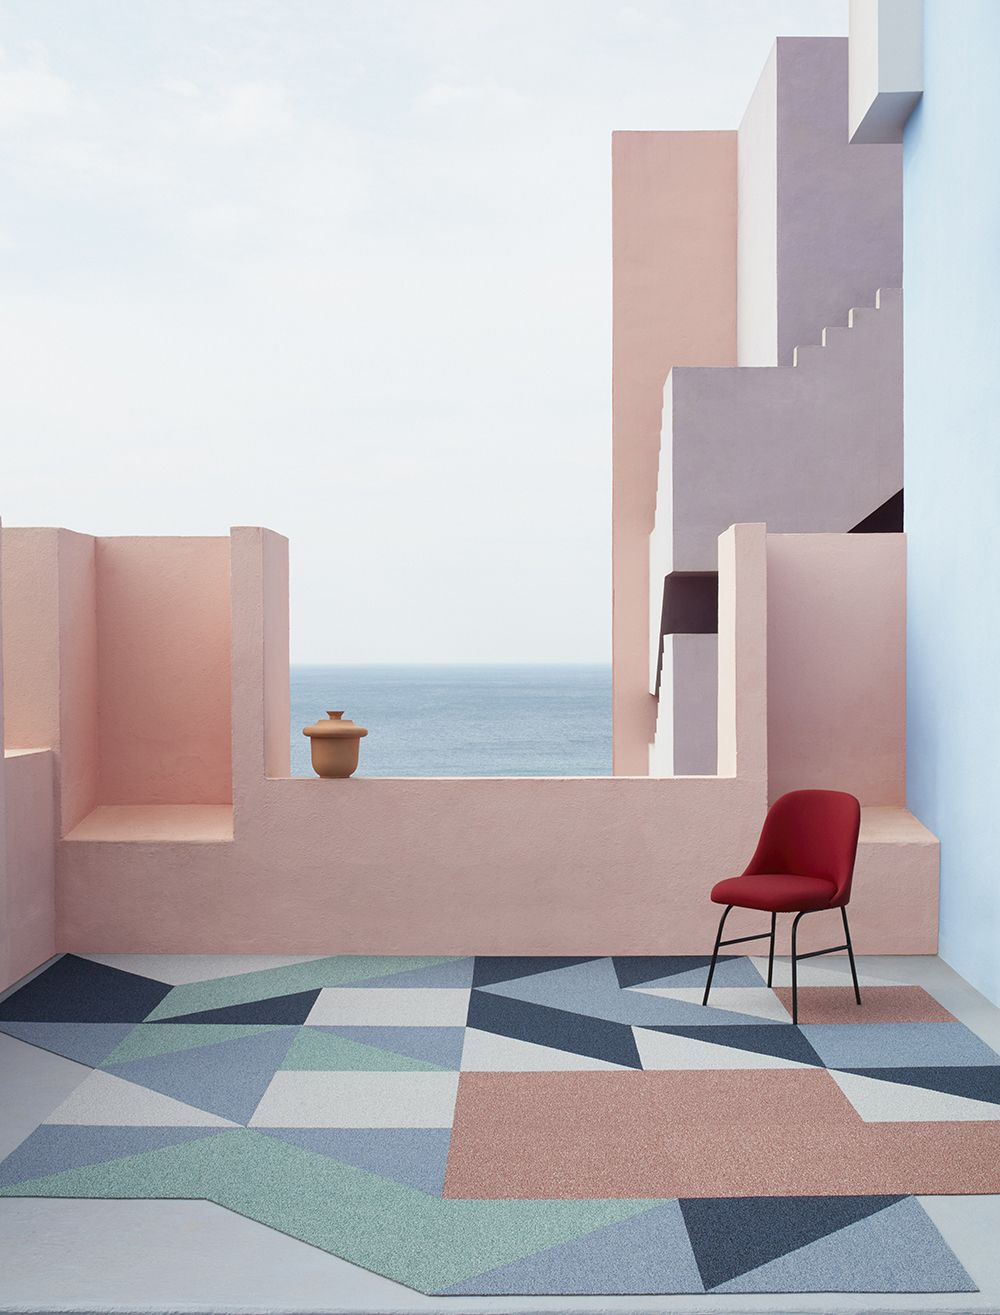 Interior Design Styles And Color Schemes For Home Decorating: 2020 Design Trends: CMF Color Material + Finish